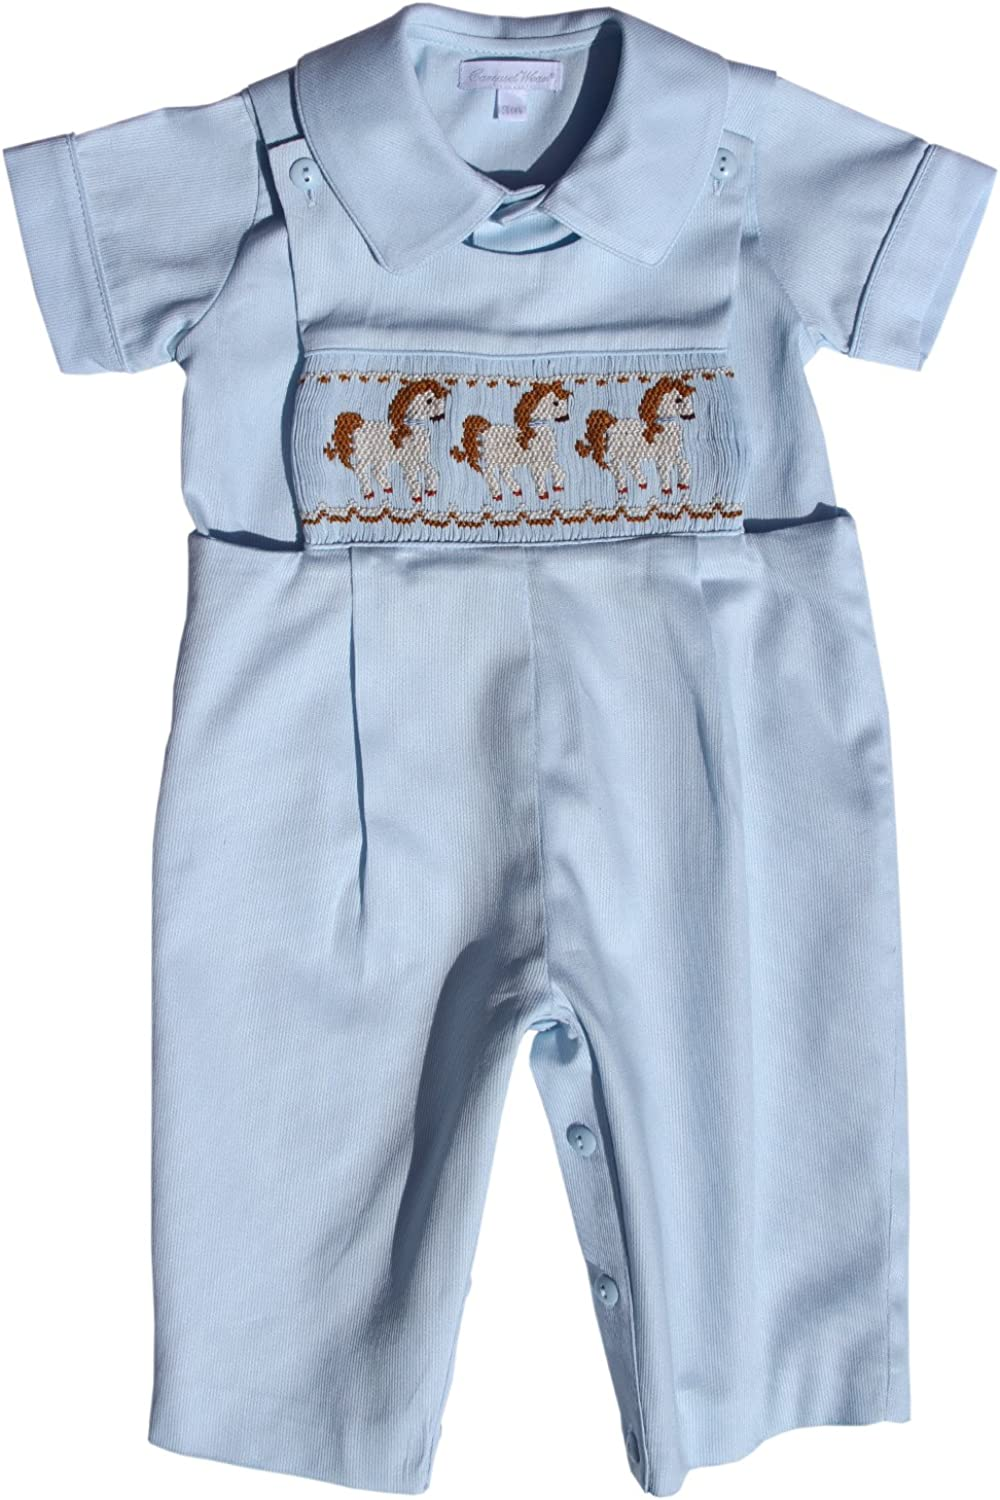 Carouselwear Baby Boy Blue Longall Overalls with Smocked Carousel Horses